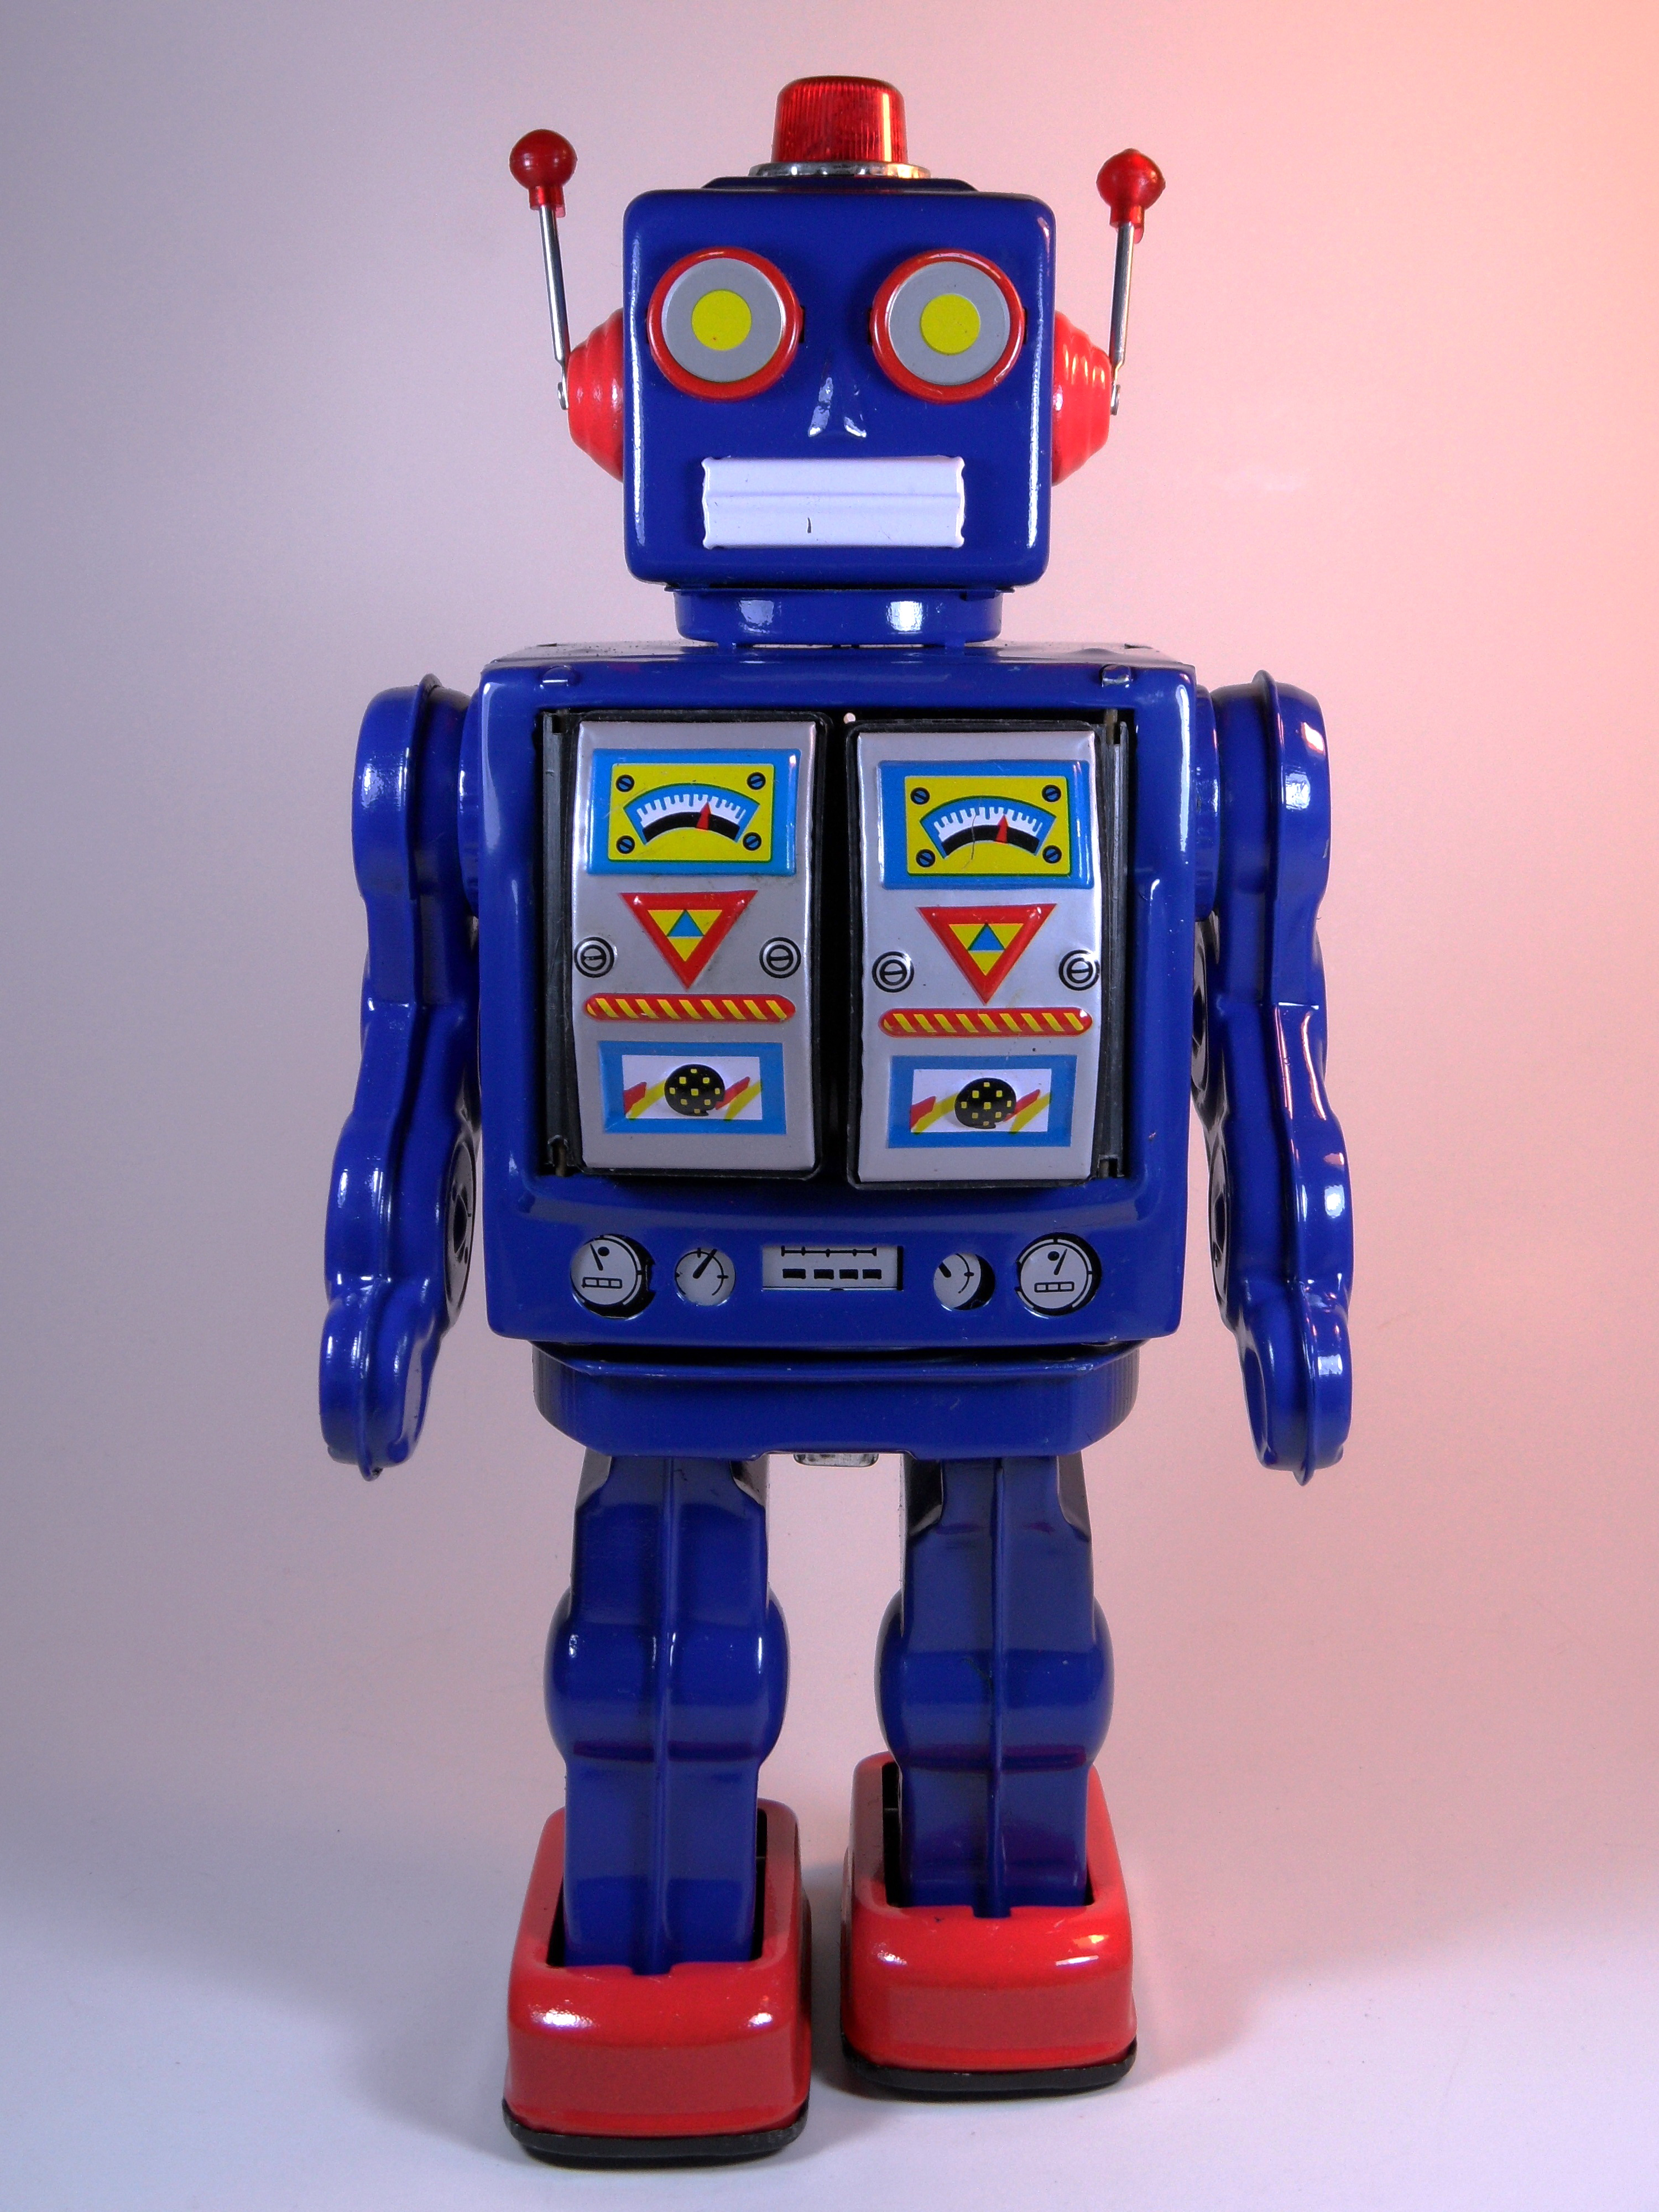 File:Schylling – Robot 2008 ME100 - Front jpg - Wikimedia